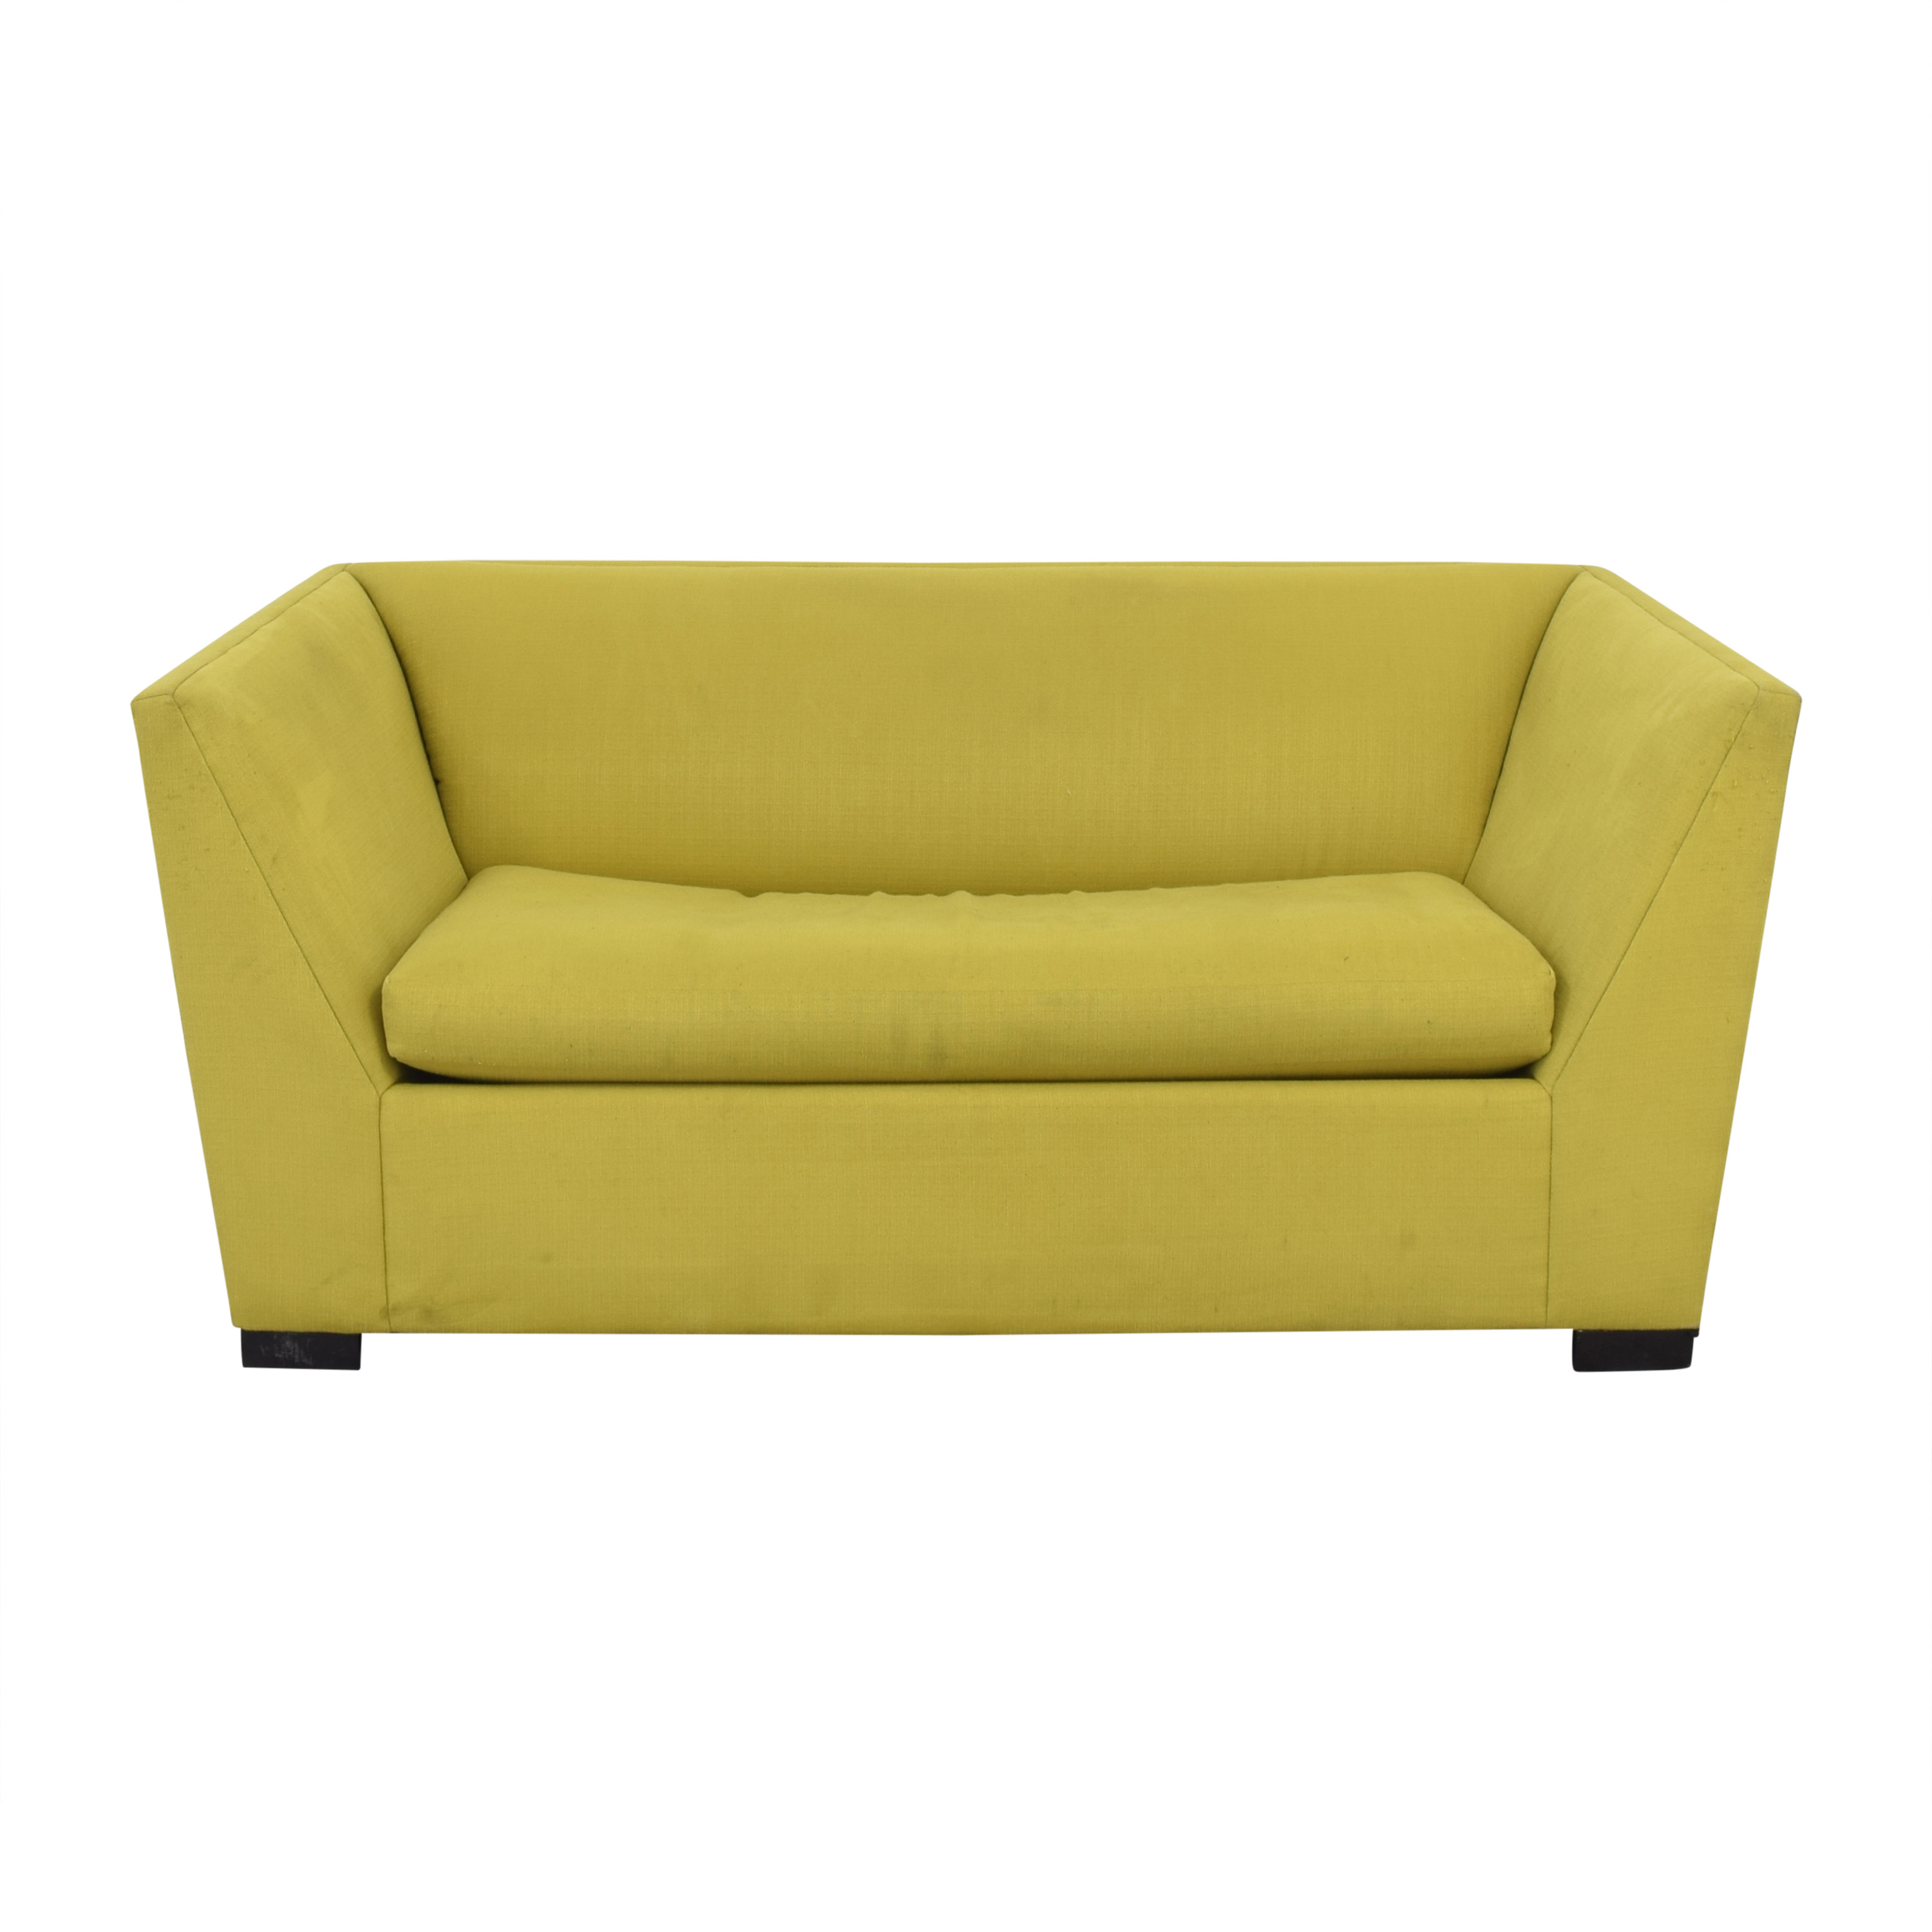 CB2 Cb2 Twin Sleeper Sofa discount